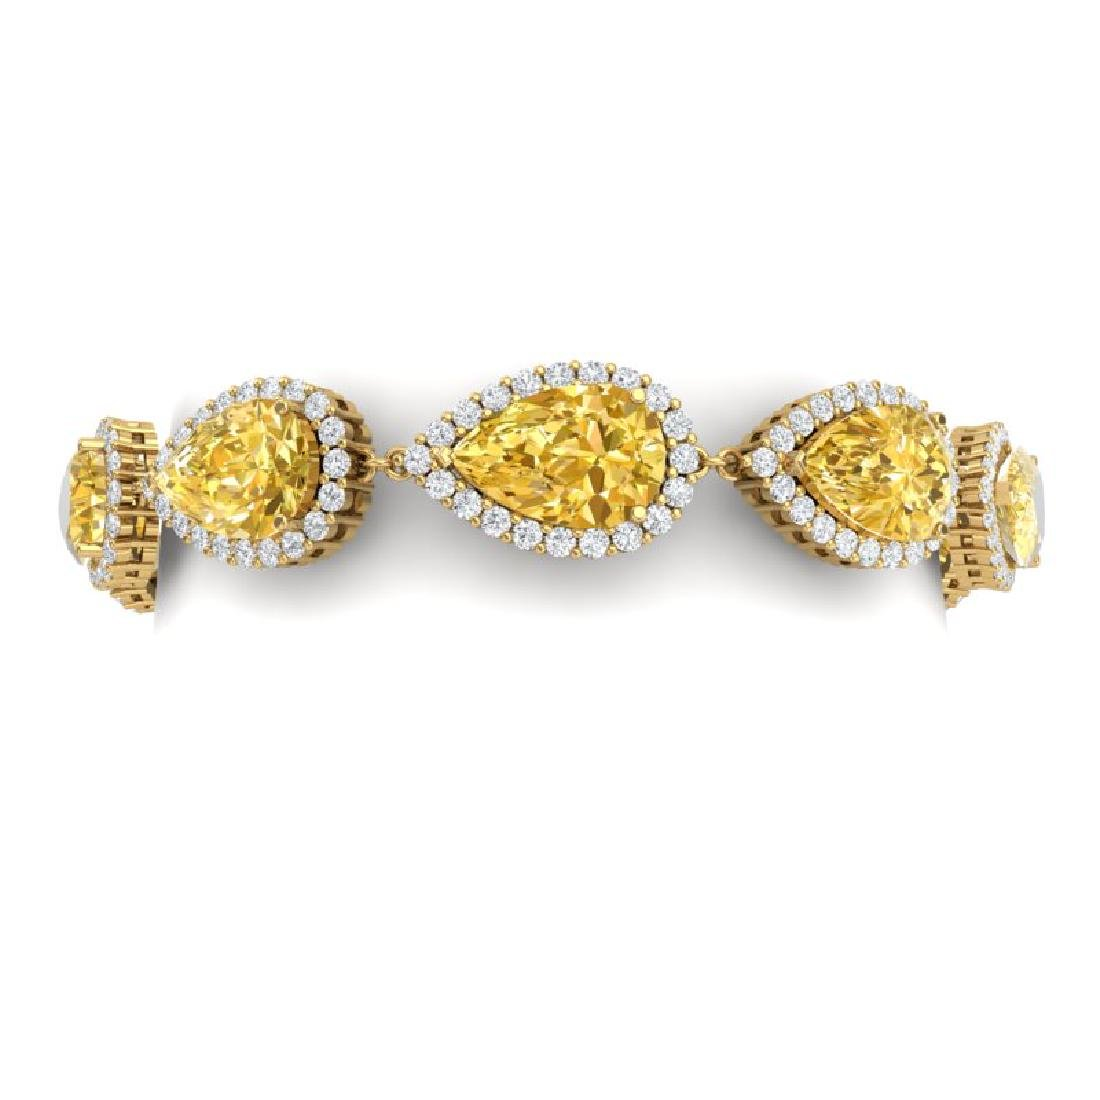 39.26 CTW Royalty Canary Citrine & VS Diamond Bracelet